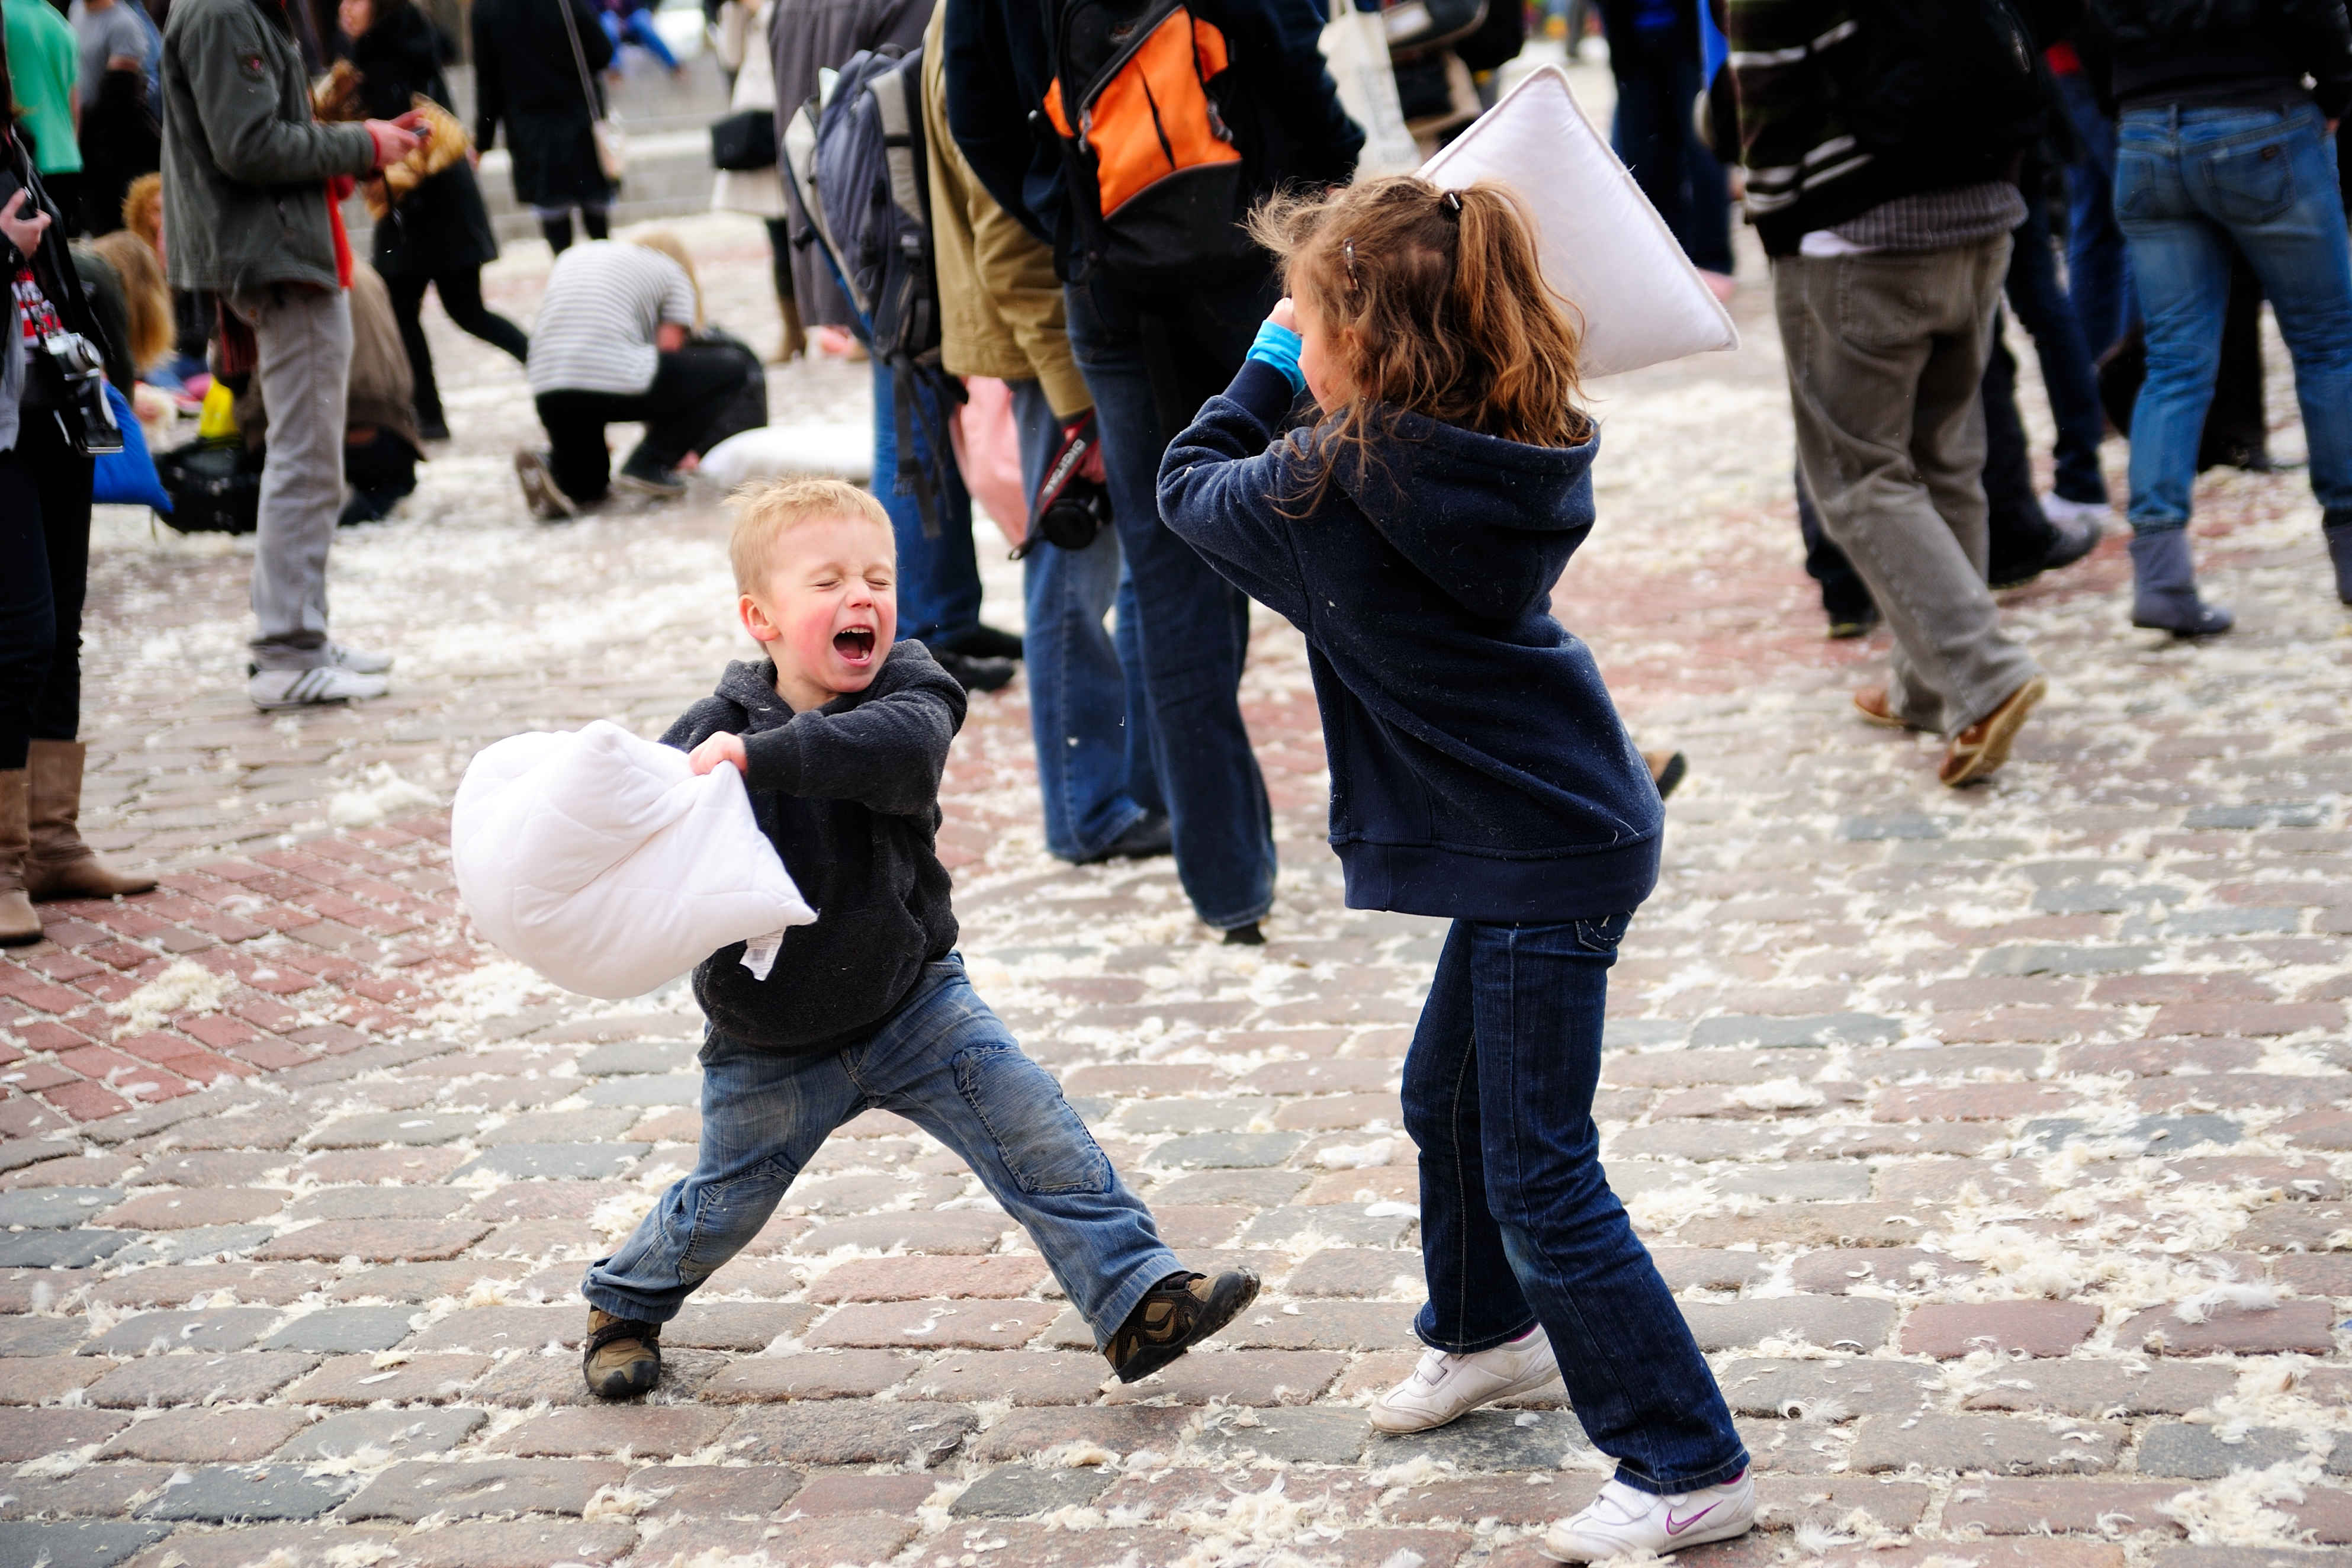 Annual Pillow Fight Attracts Hundreds to Washington Square Park